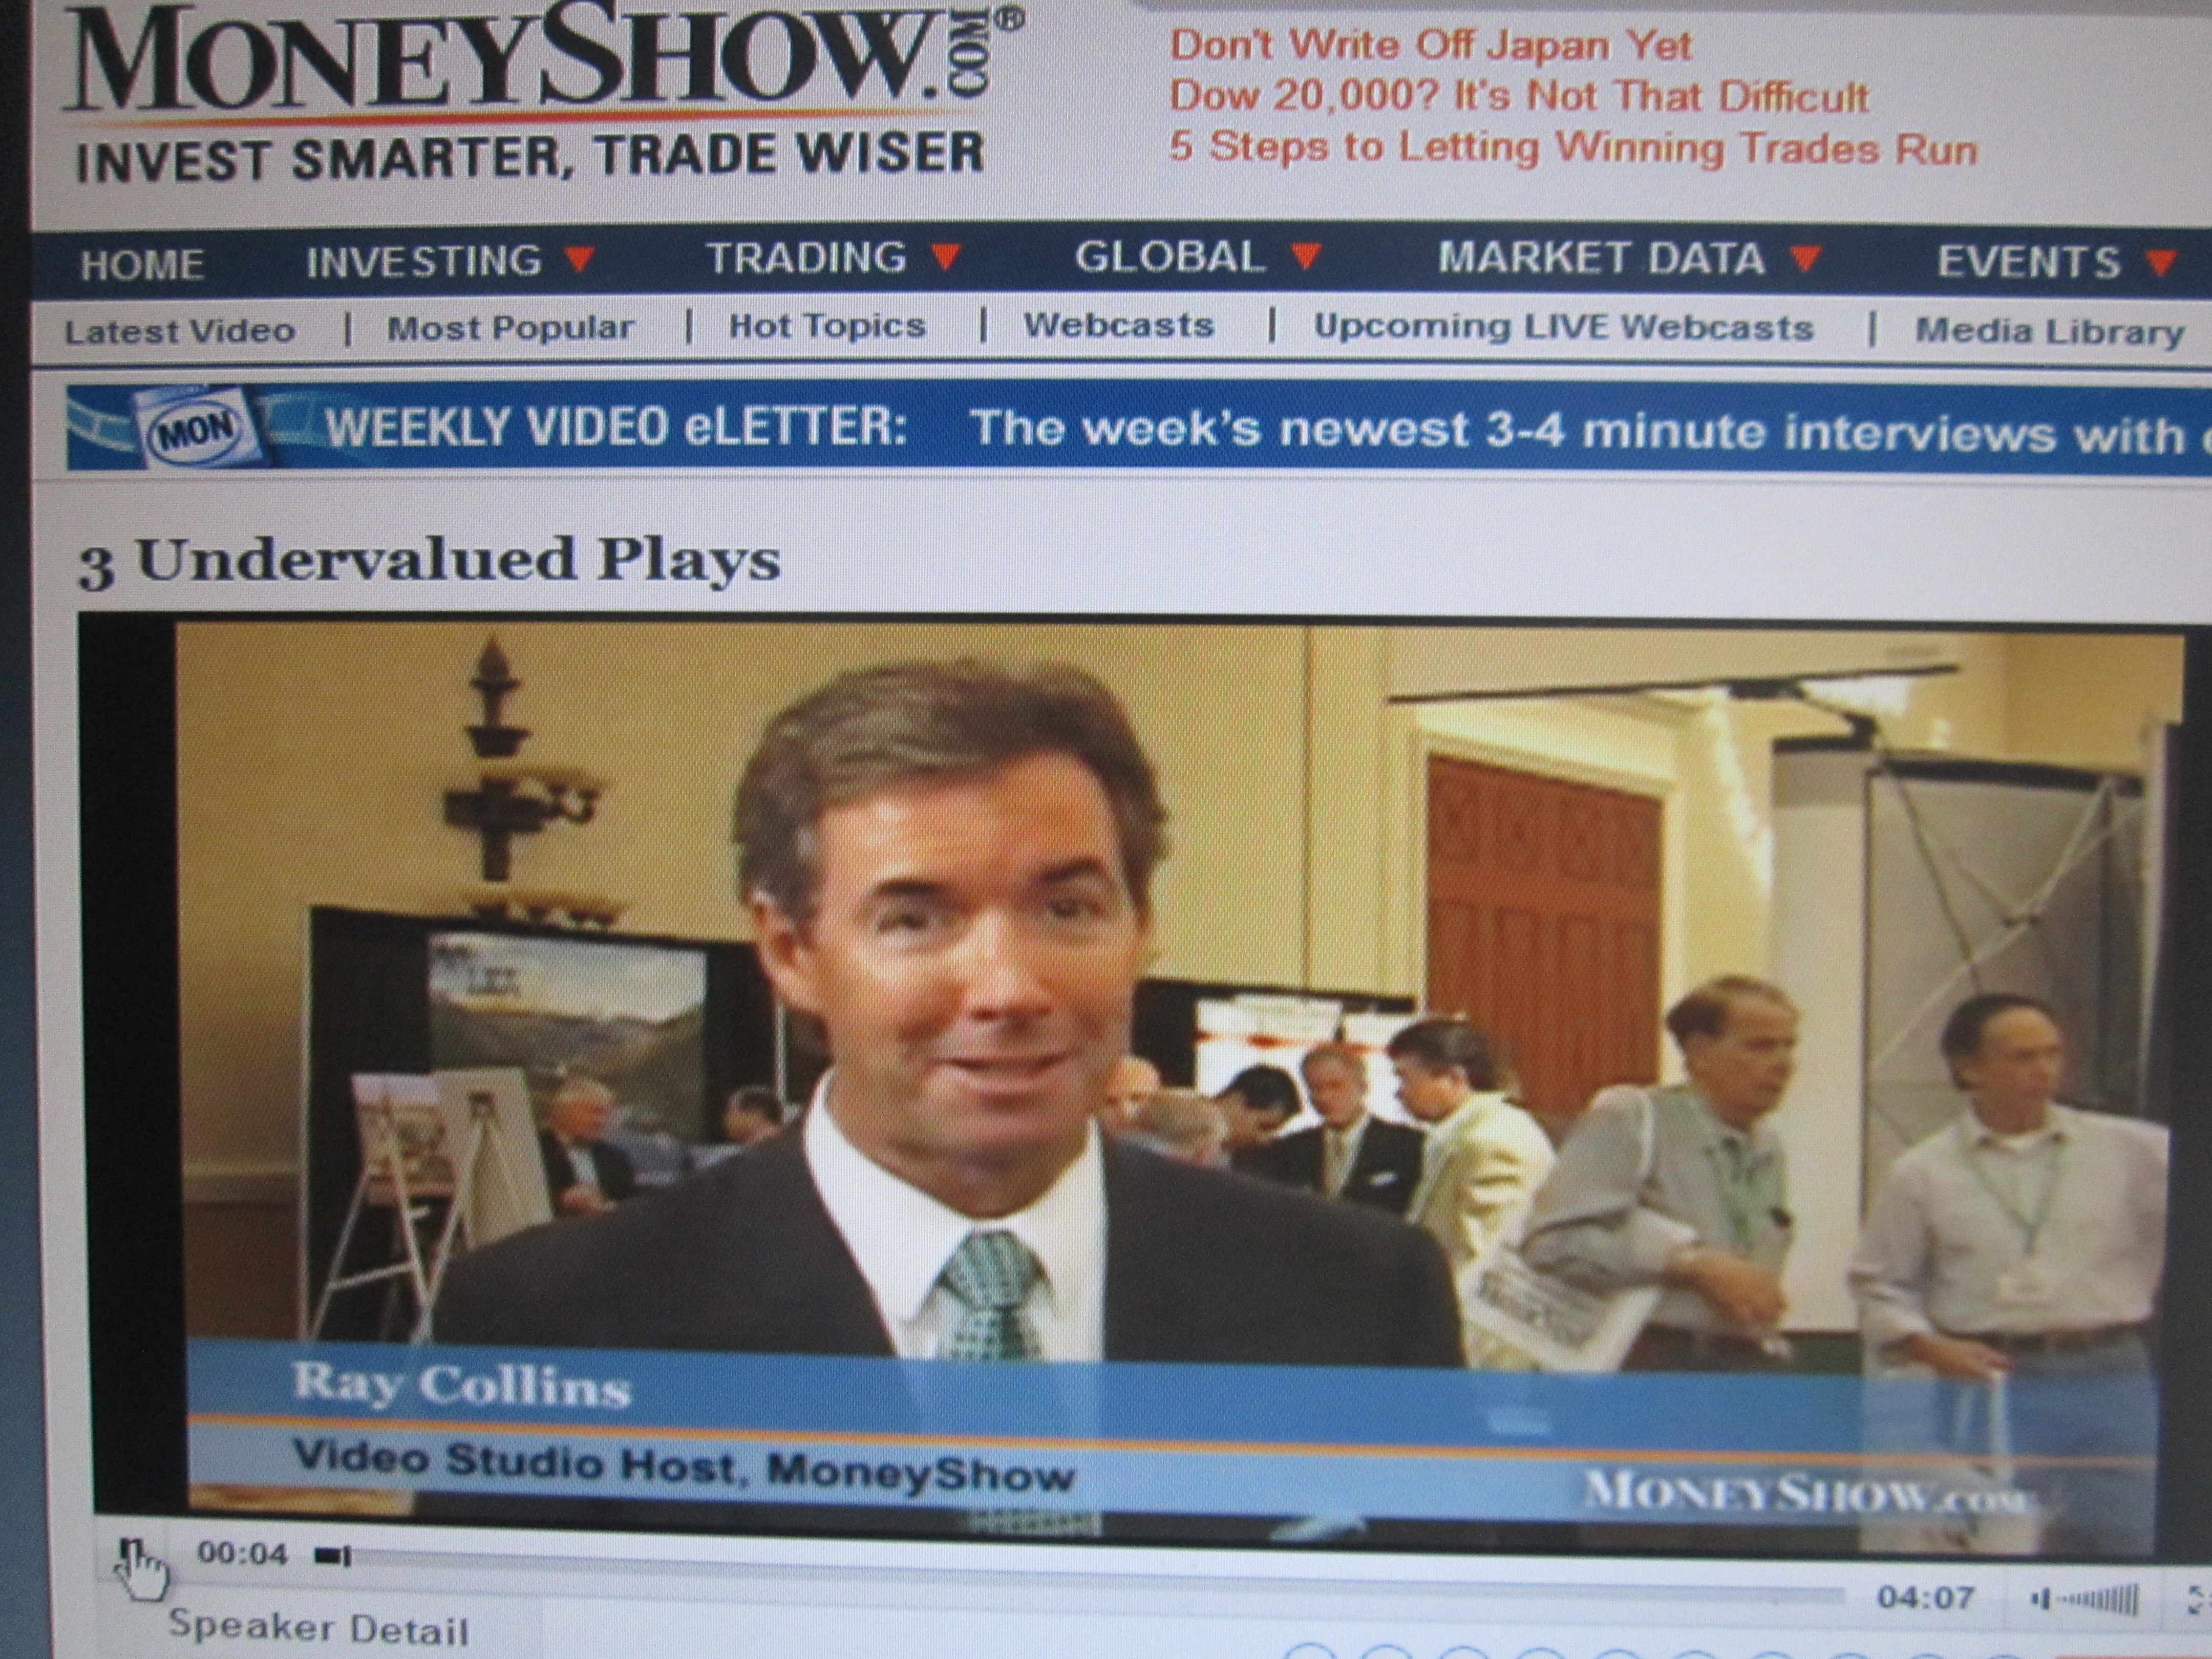 Ray Collins hosting segments on the MoneyShow from Caesars Palace in Las Vegas.